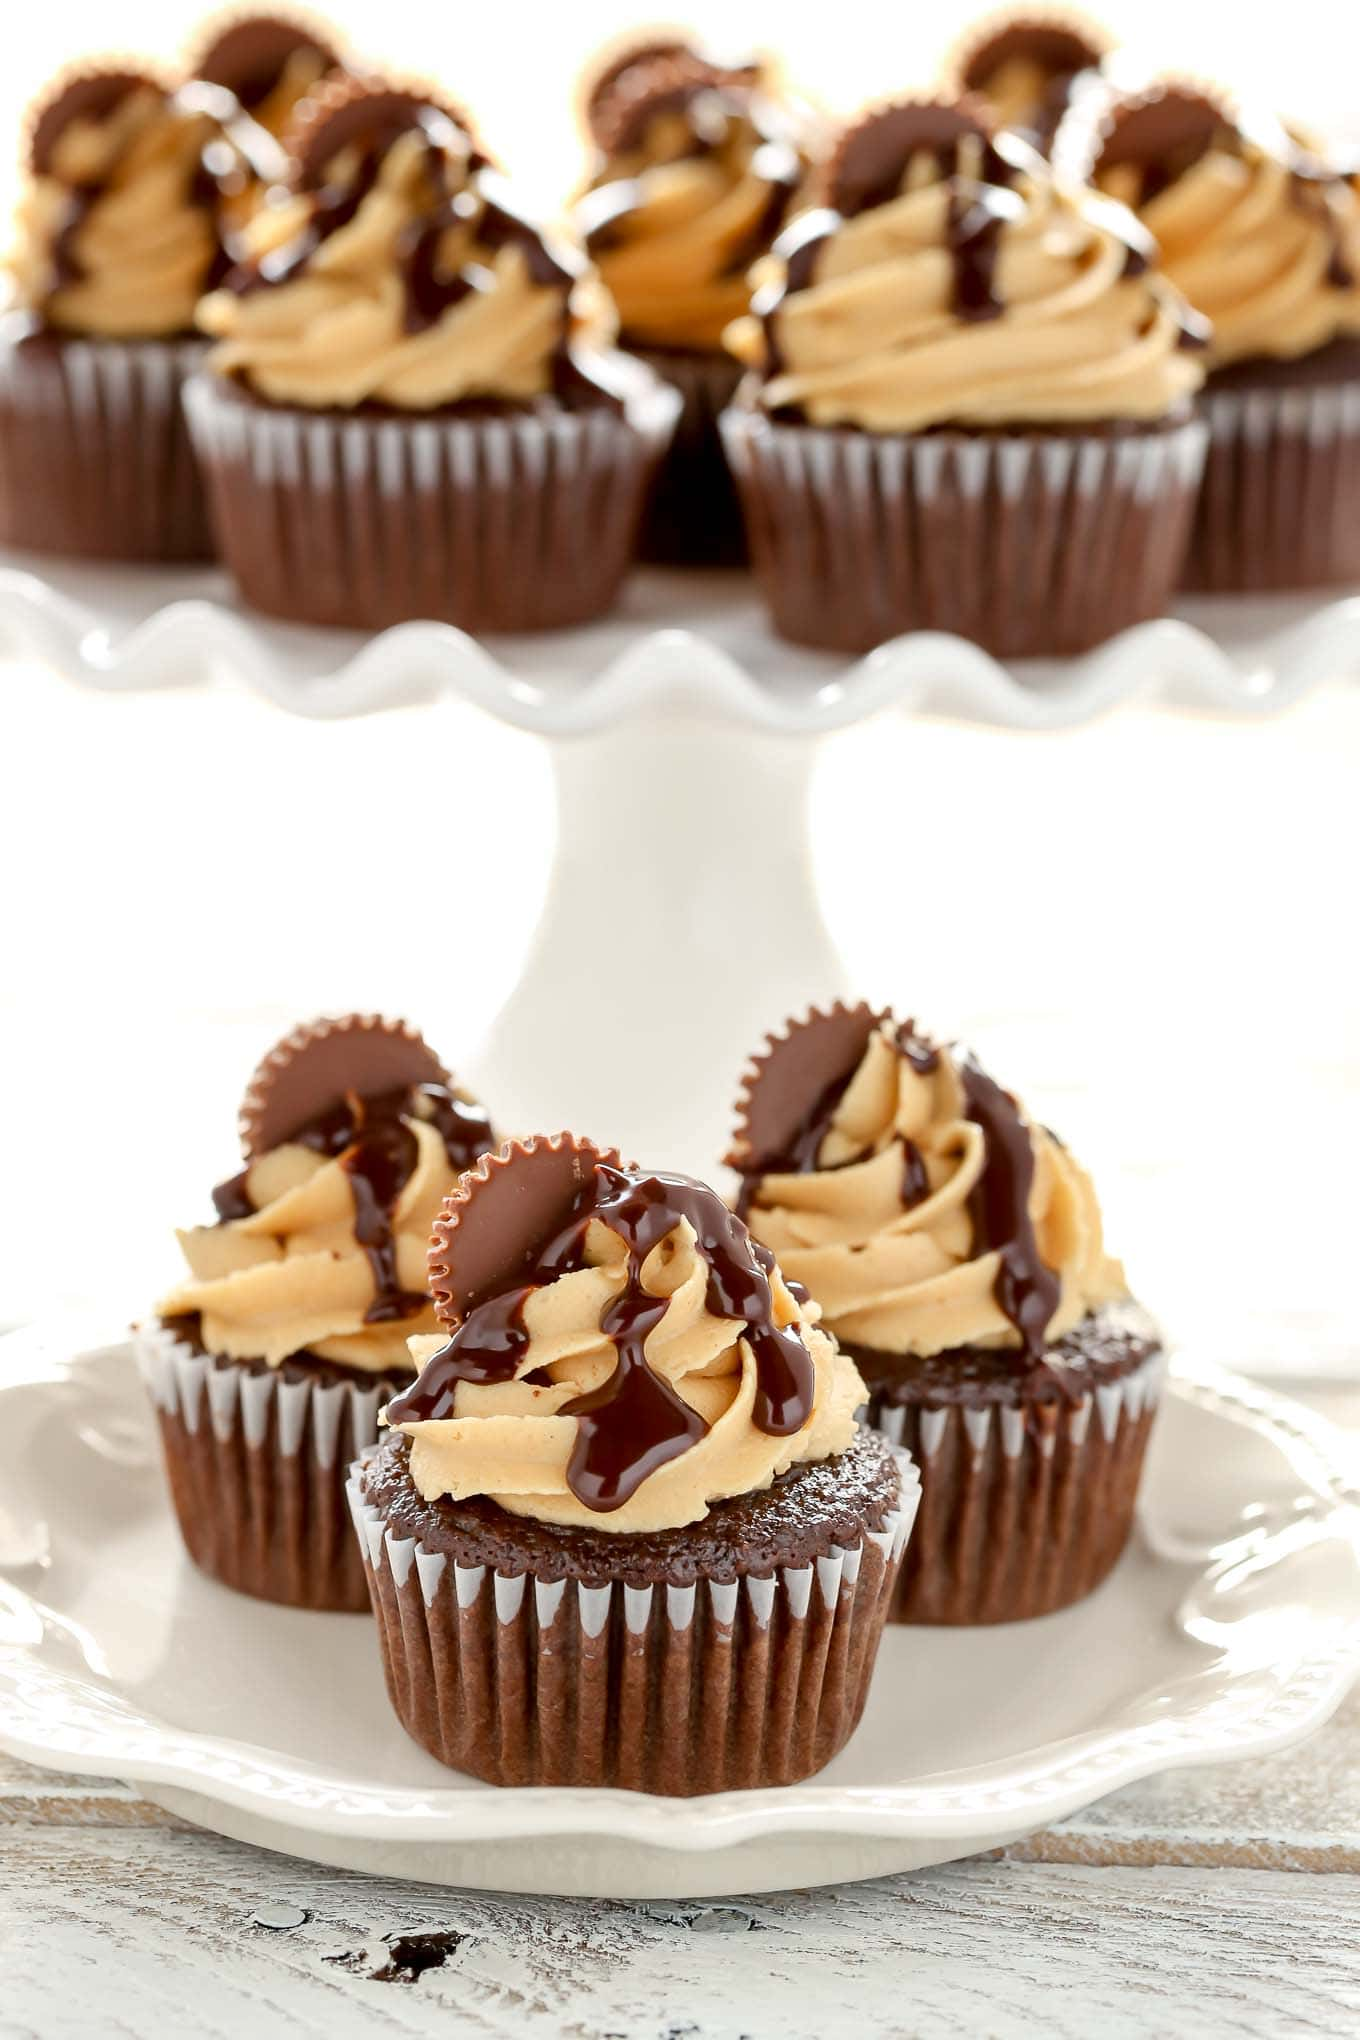 Moist chocolate cupcakes with peanut butter frosting, chocolate ganache, and peanut butter cups. These cupcakes are the ultimate chocolate and peanut butter dessert!